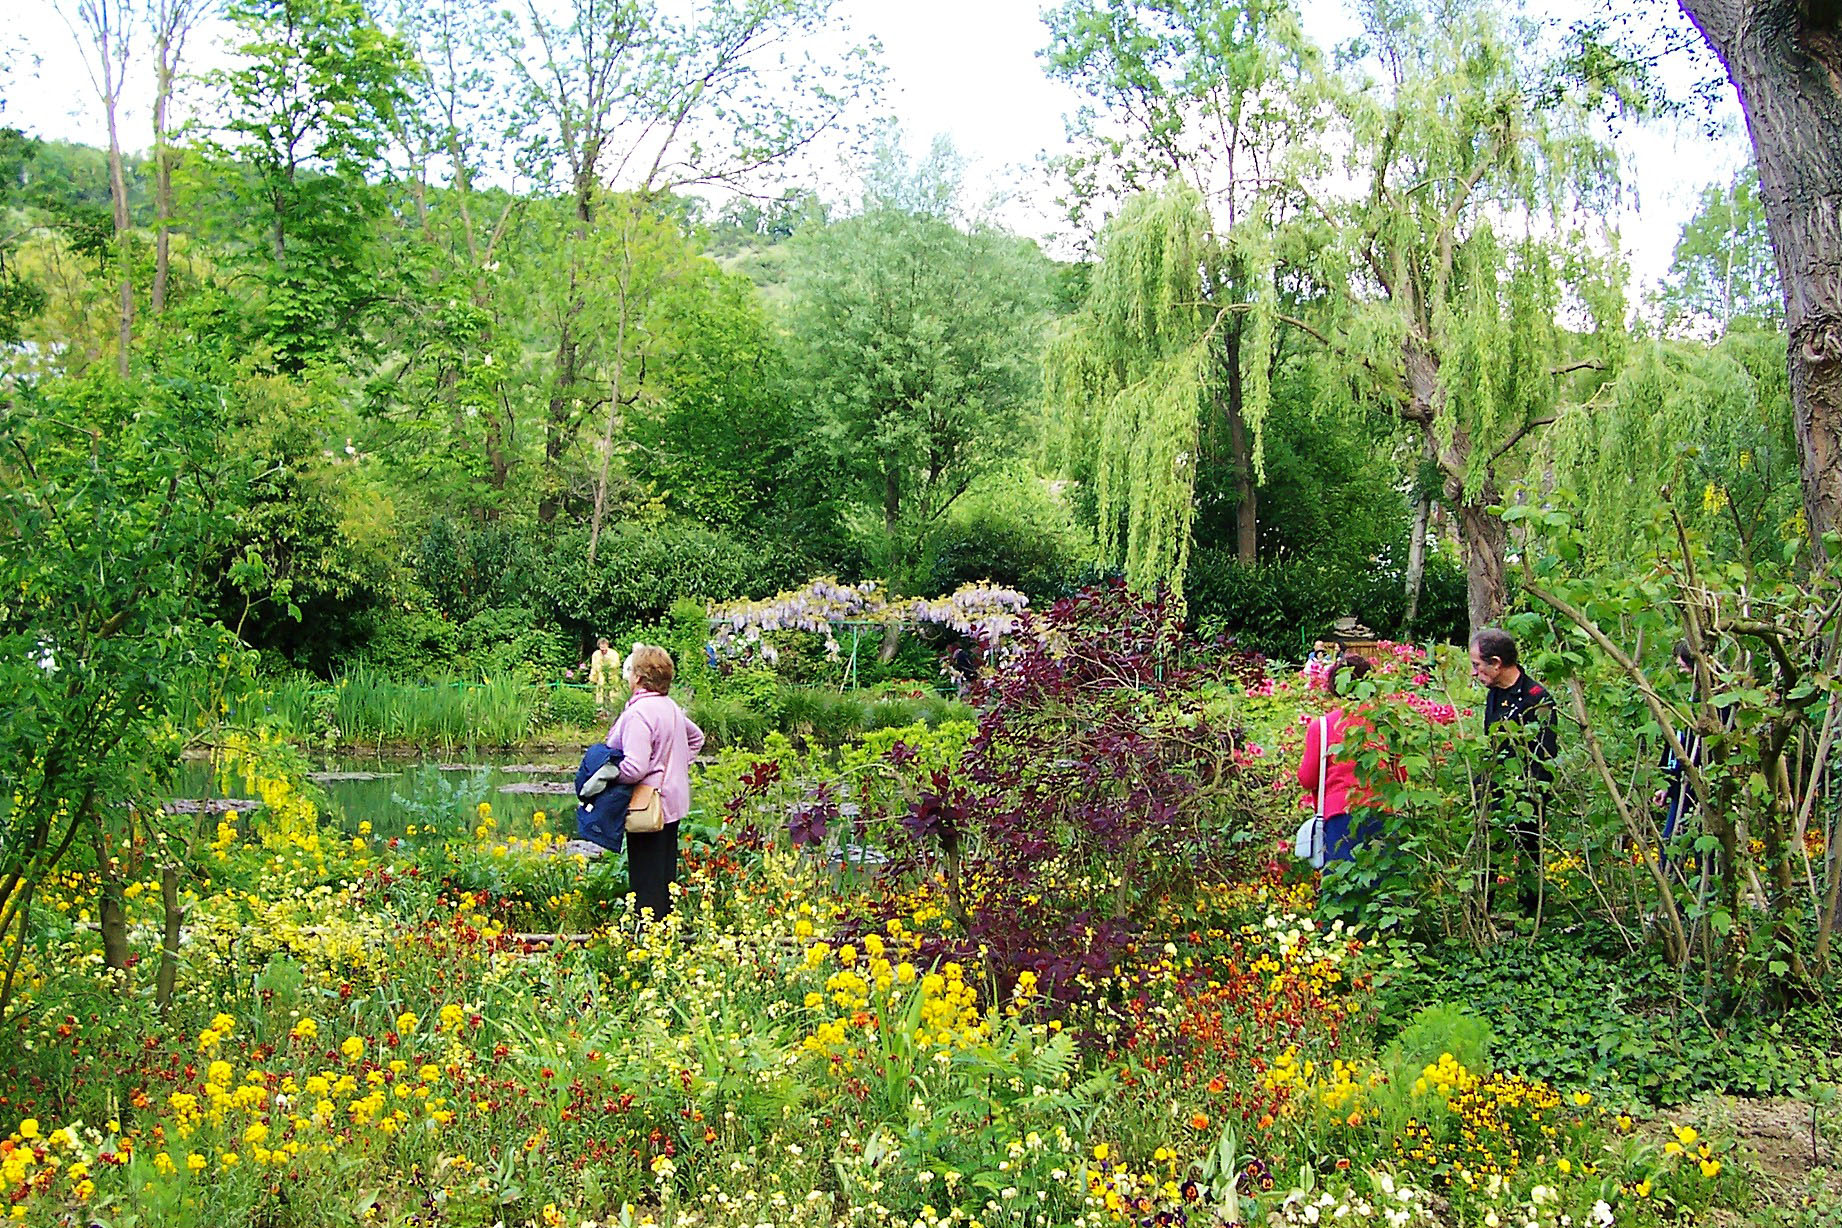 Travel To Claude Monet Home Or Chateau Garden Pathways In